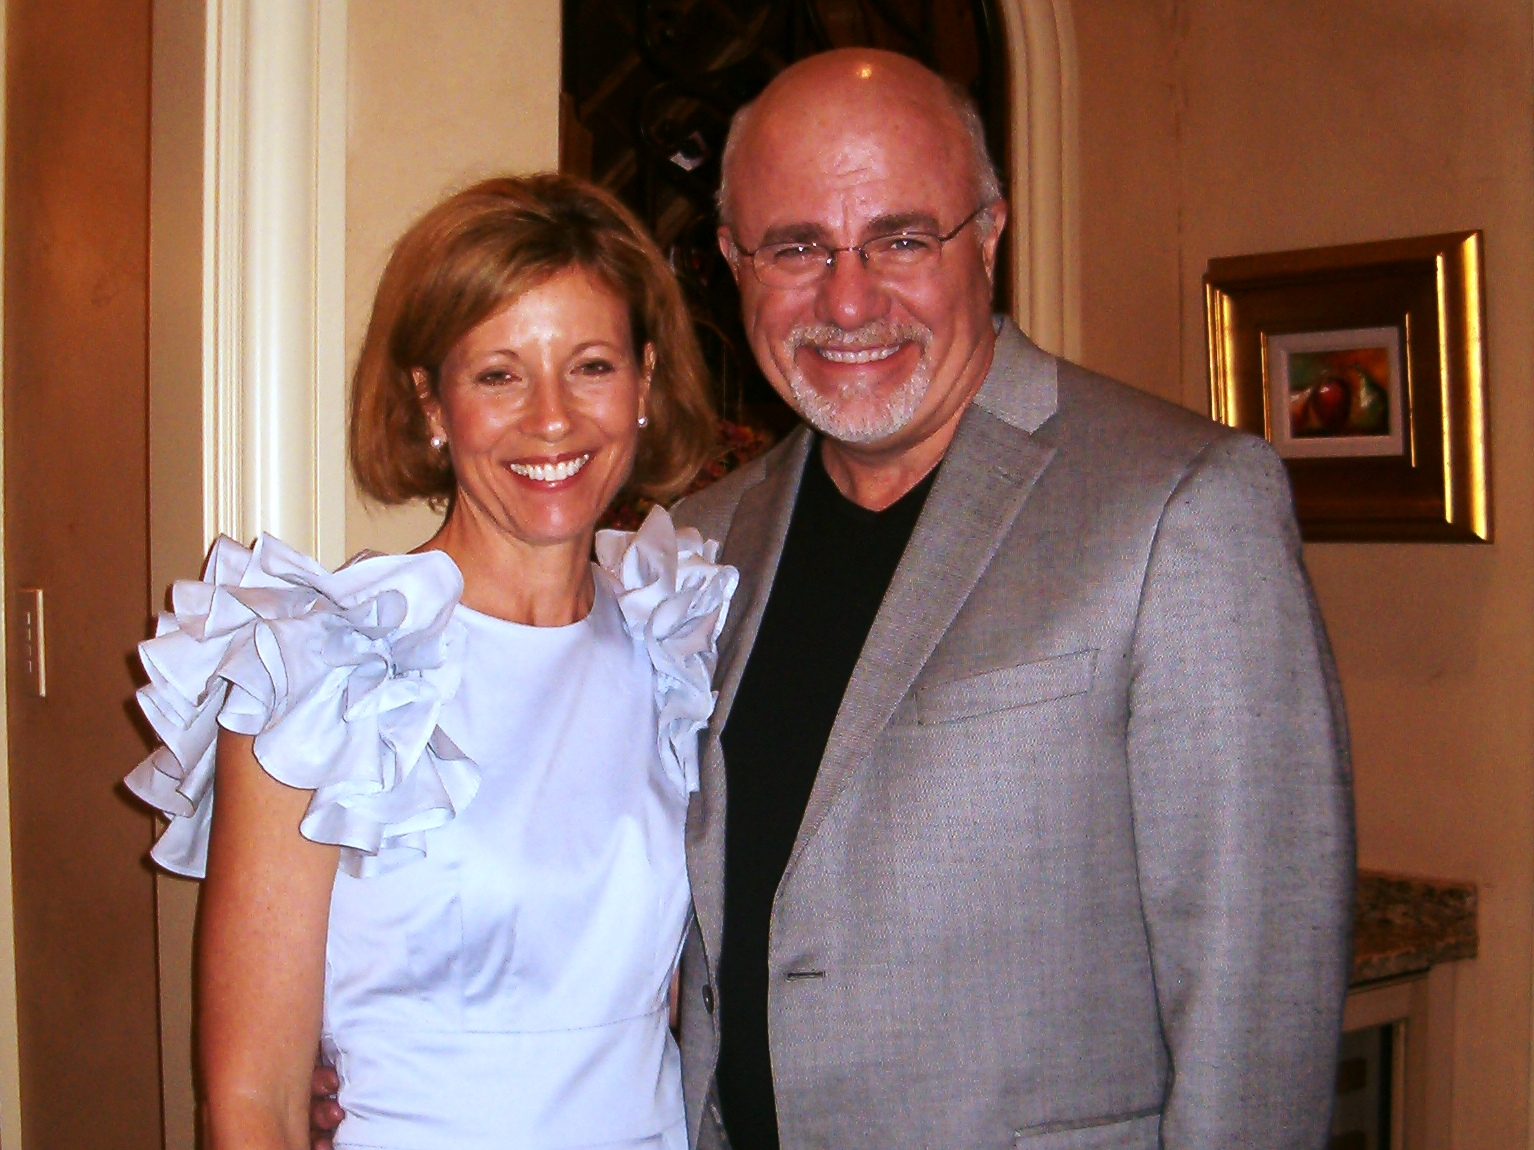 dave ramsey family - photo #45